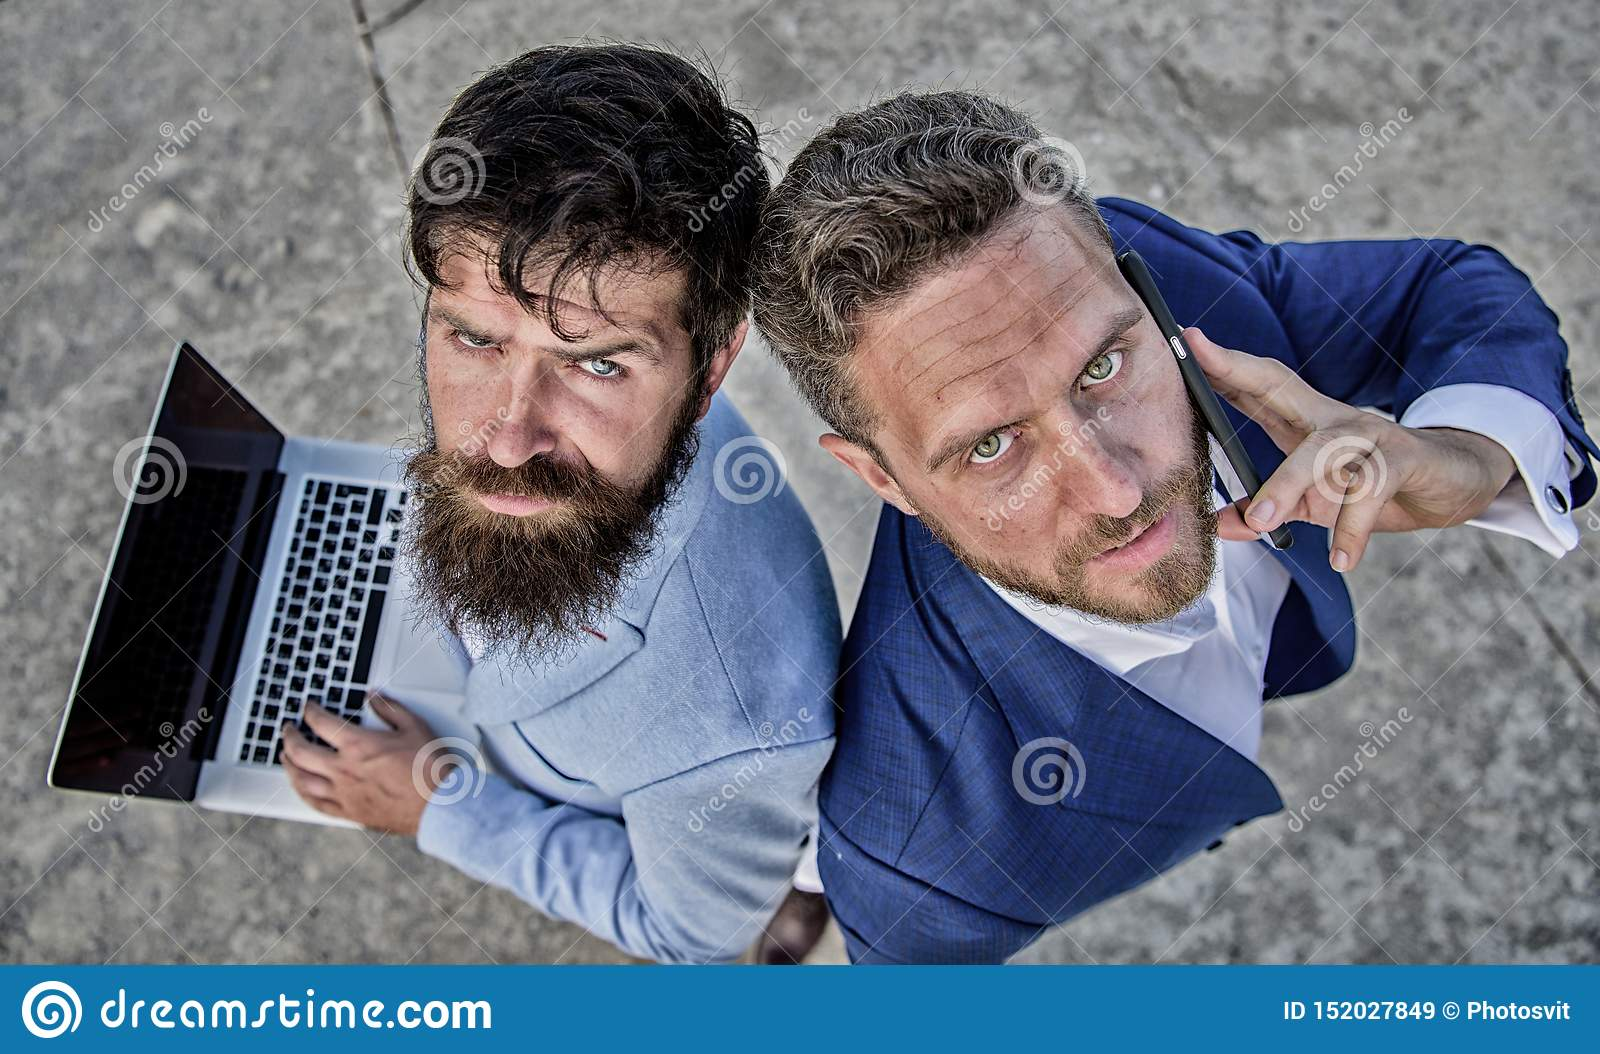 Entrepreneurship as teamwork. Businessmen with laptop and phone call solving problems making deal.